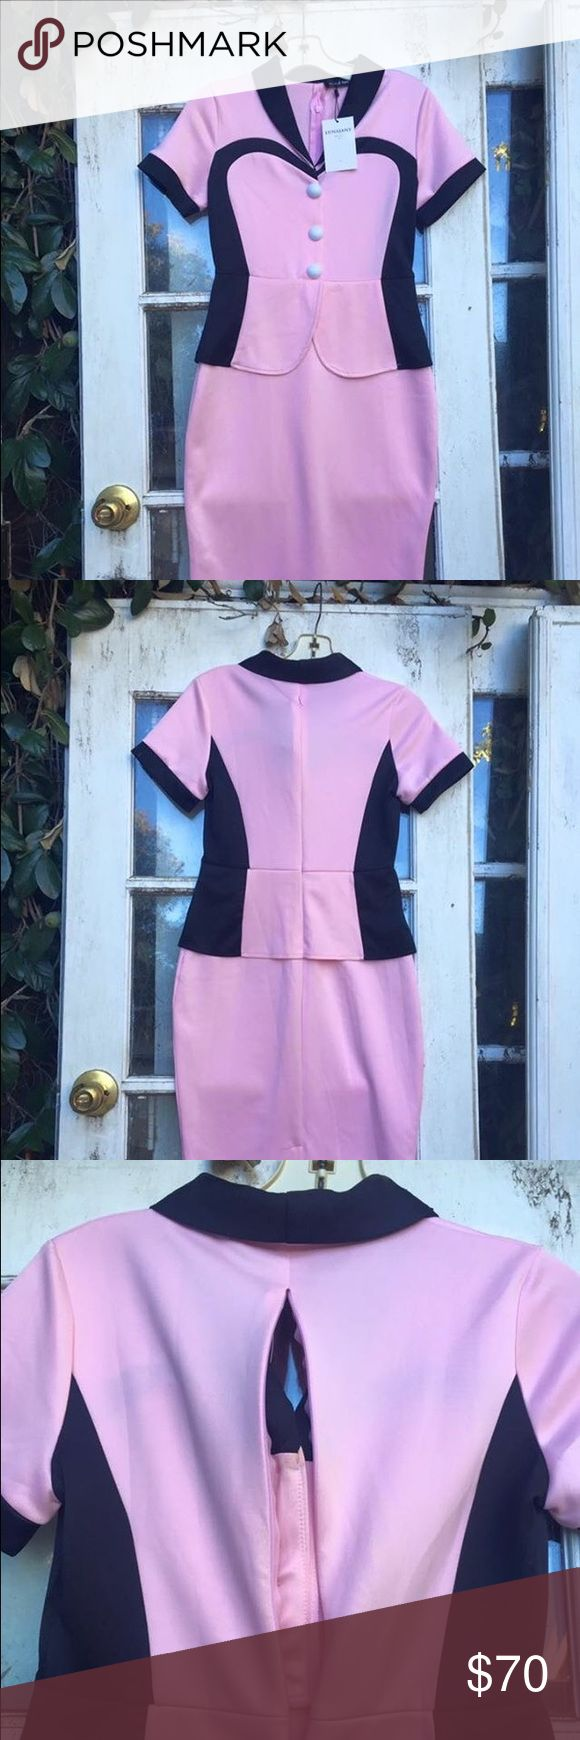 """1950s Pink Lana Janey Waitress pencil SM dress Brand new never worn. Tags attached. Size SM on tag. Located in Reseda, CA. Shipping cost $6.00 for US. Ships internationally with approval plus extra shipping.  Paypal payment must be paid ASAP after the invoice.   Best offer accepted   Bust 36-38"""" Waist 27-28"""" Hip 38-39""""  Originally $120 Read Less Lana Janey Dresses Midi"""